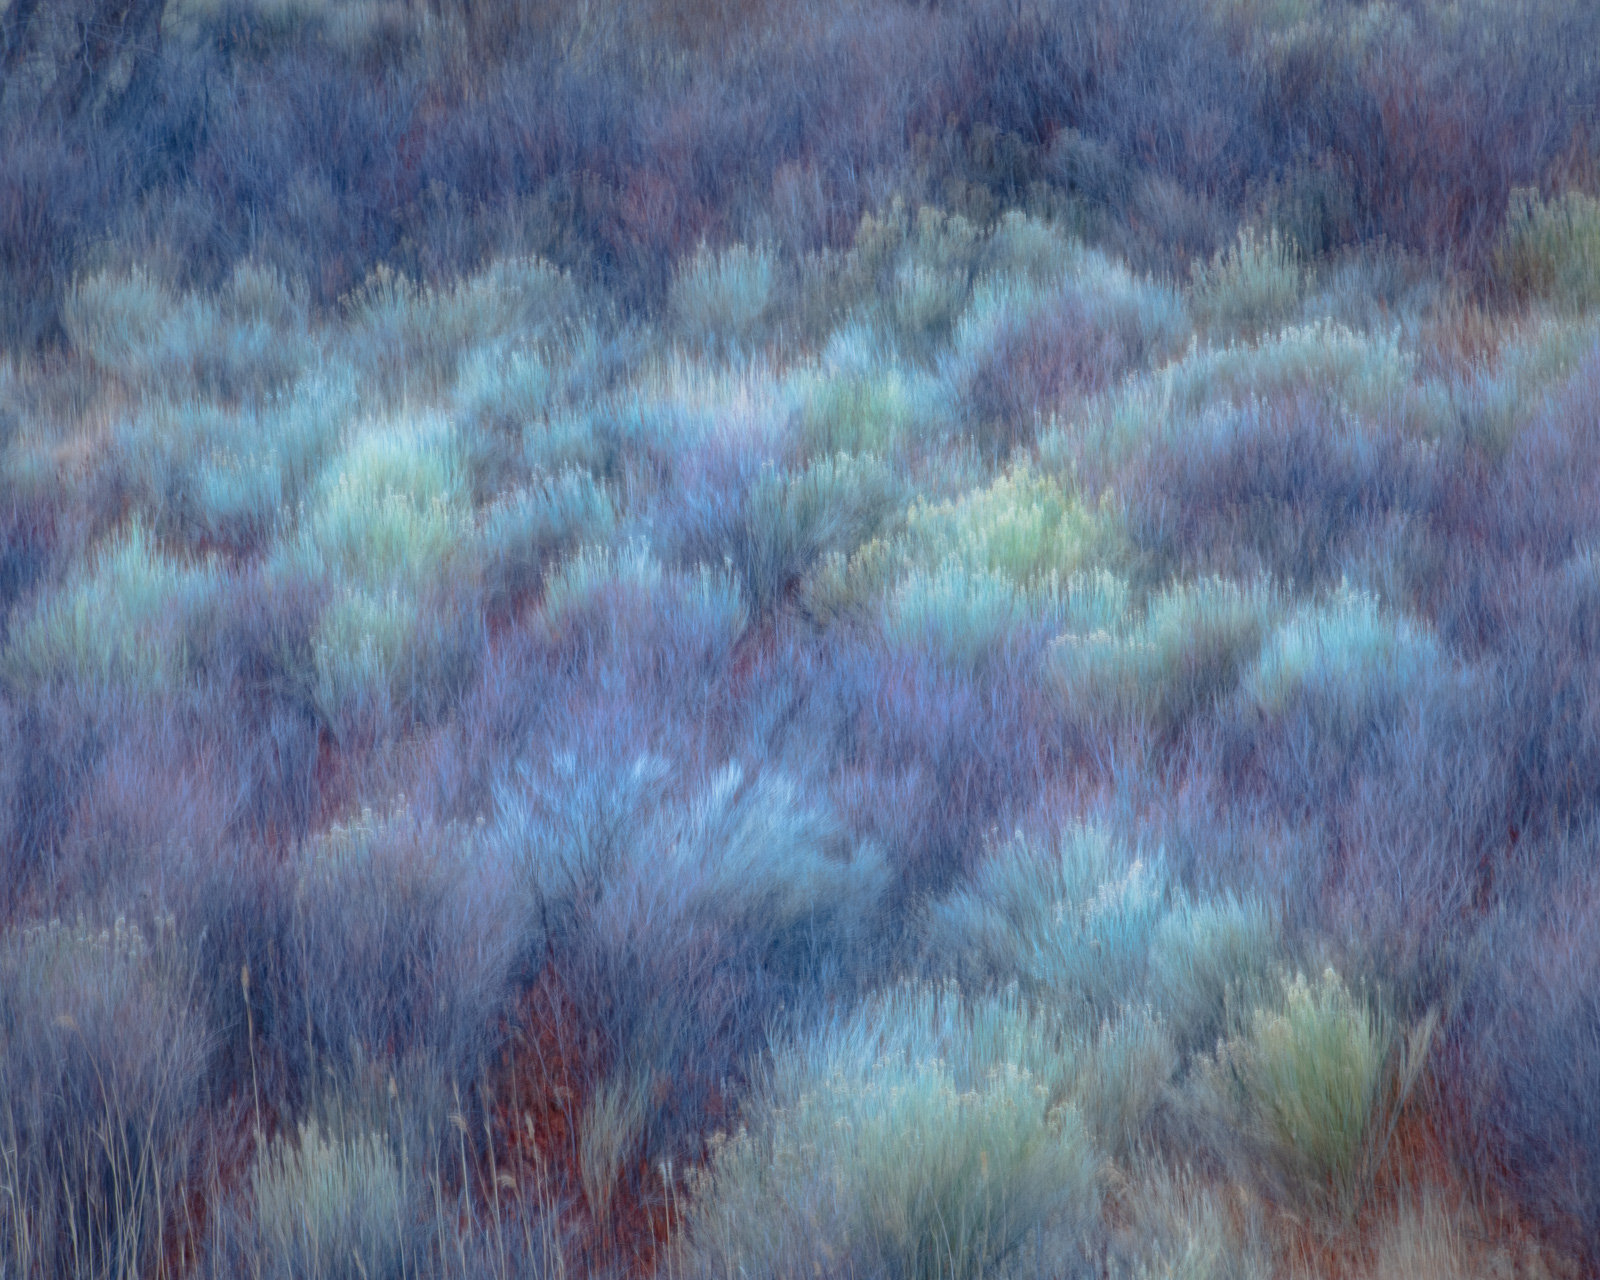 Sage & Rabbit Brush abstraction in the Owens Valley, California.